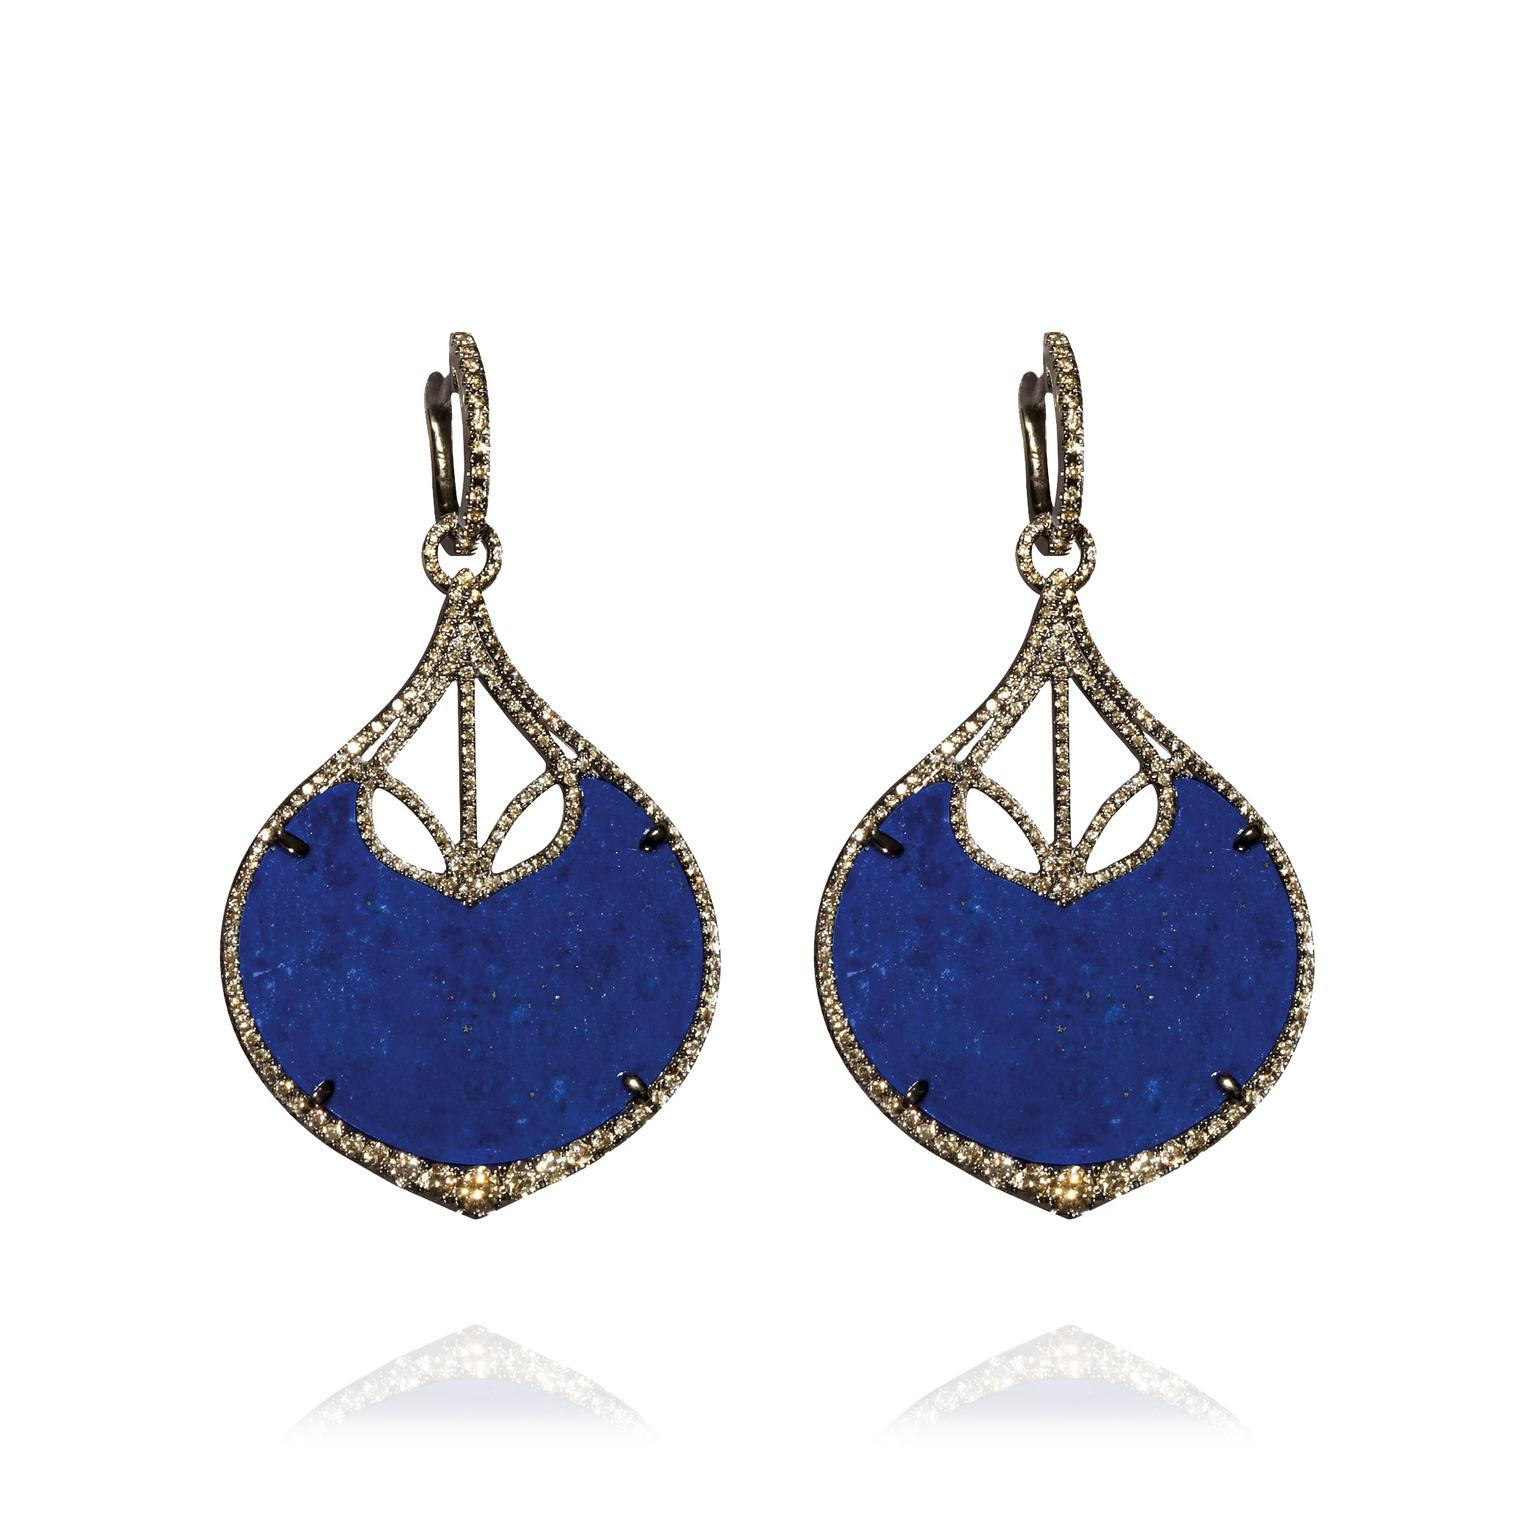 Annoushka-Cloud-Nine-Nocturnal-earrings-Zoom